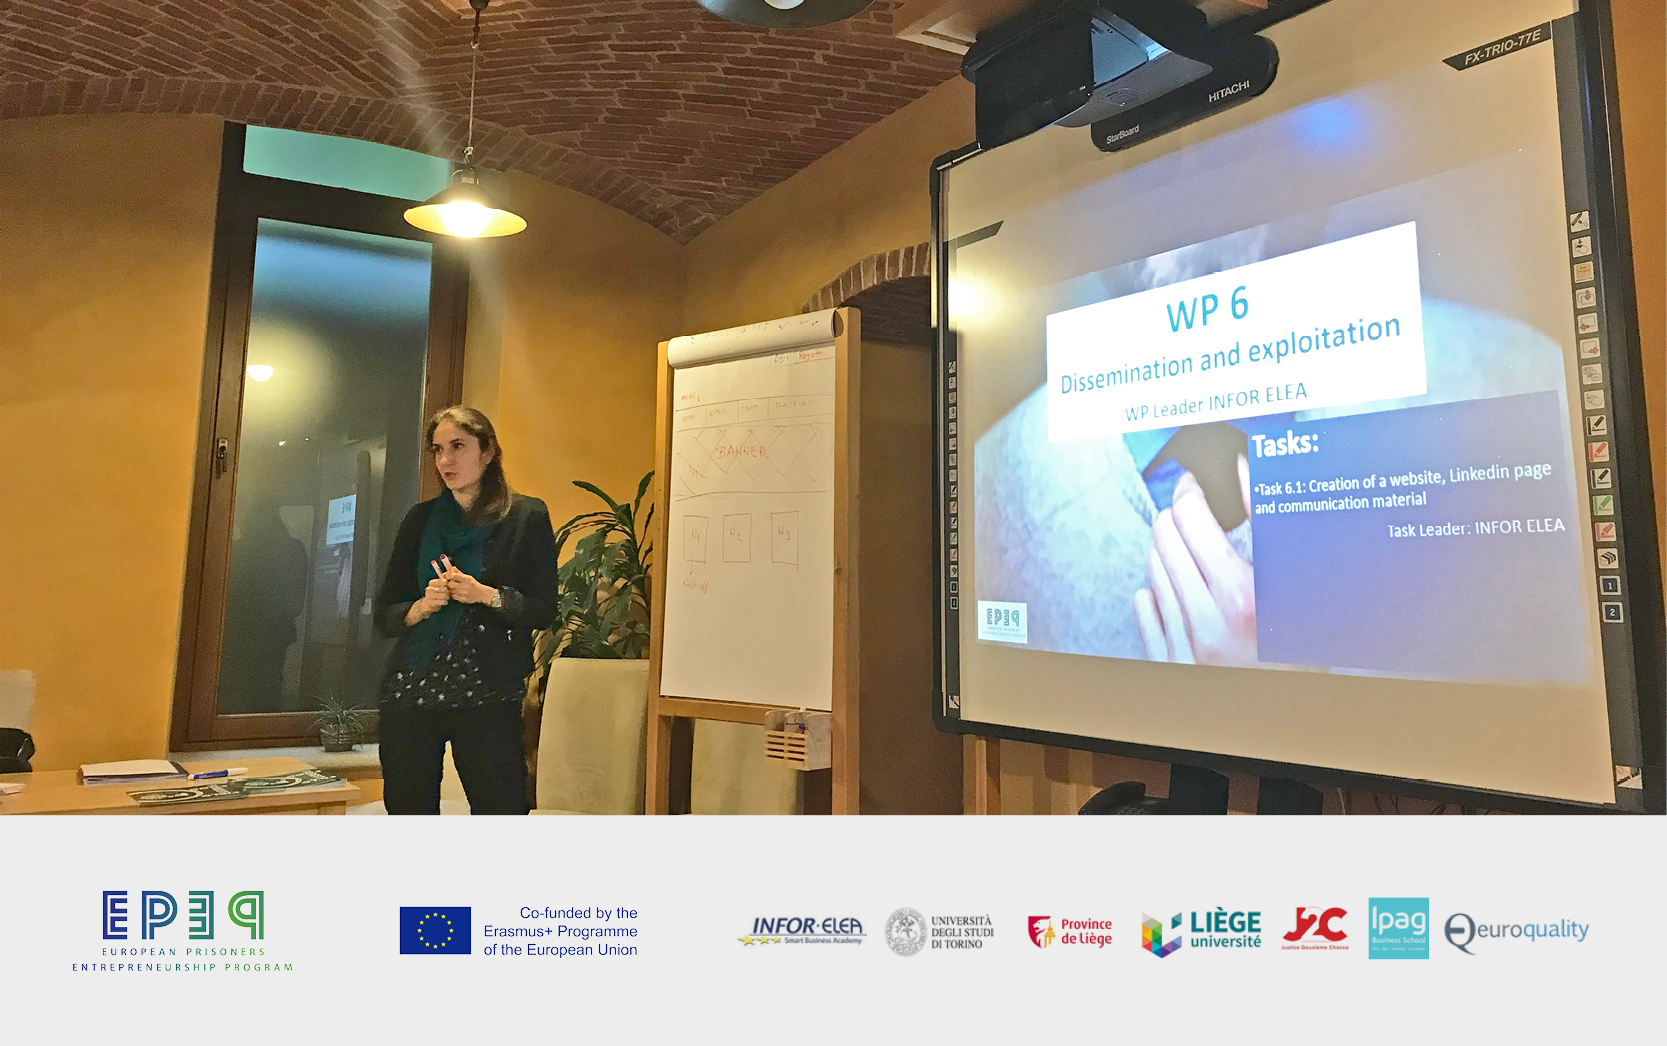 05 – 06 novembre 2018 – EPEP European Prisoners Entrepreneurship Program